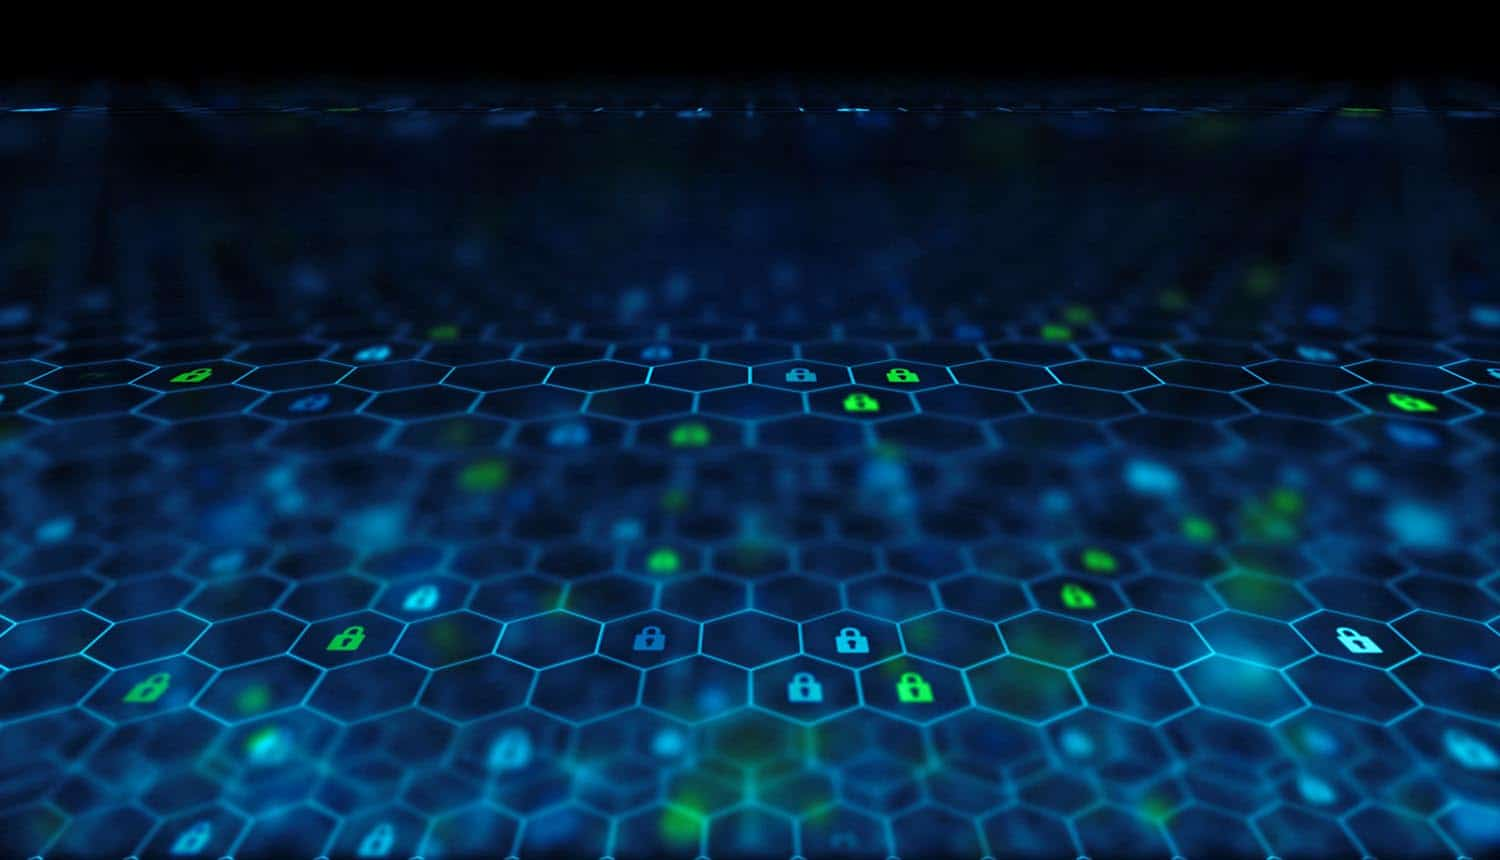 Image of locks in a connected chain signifying the impact of blockchain technology on the future of cyber security